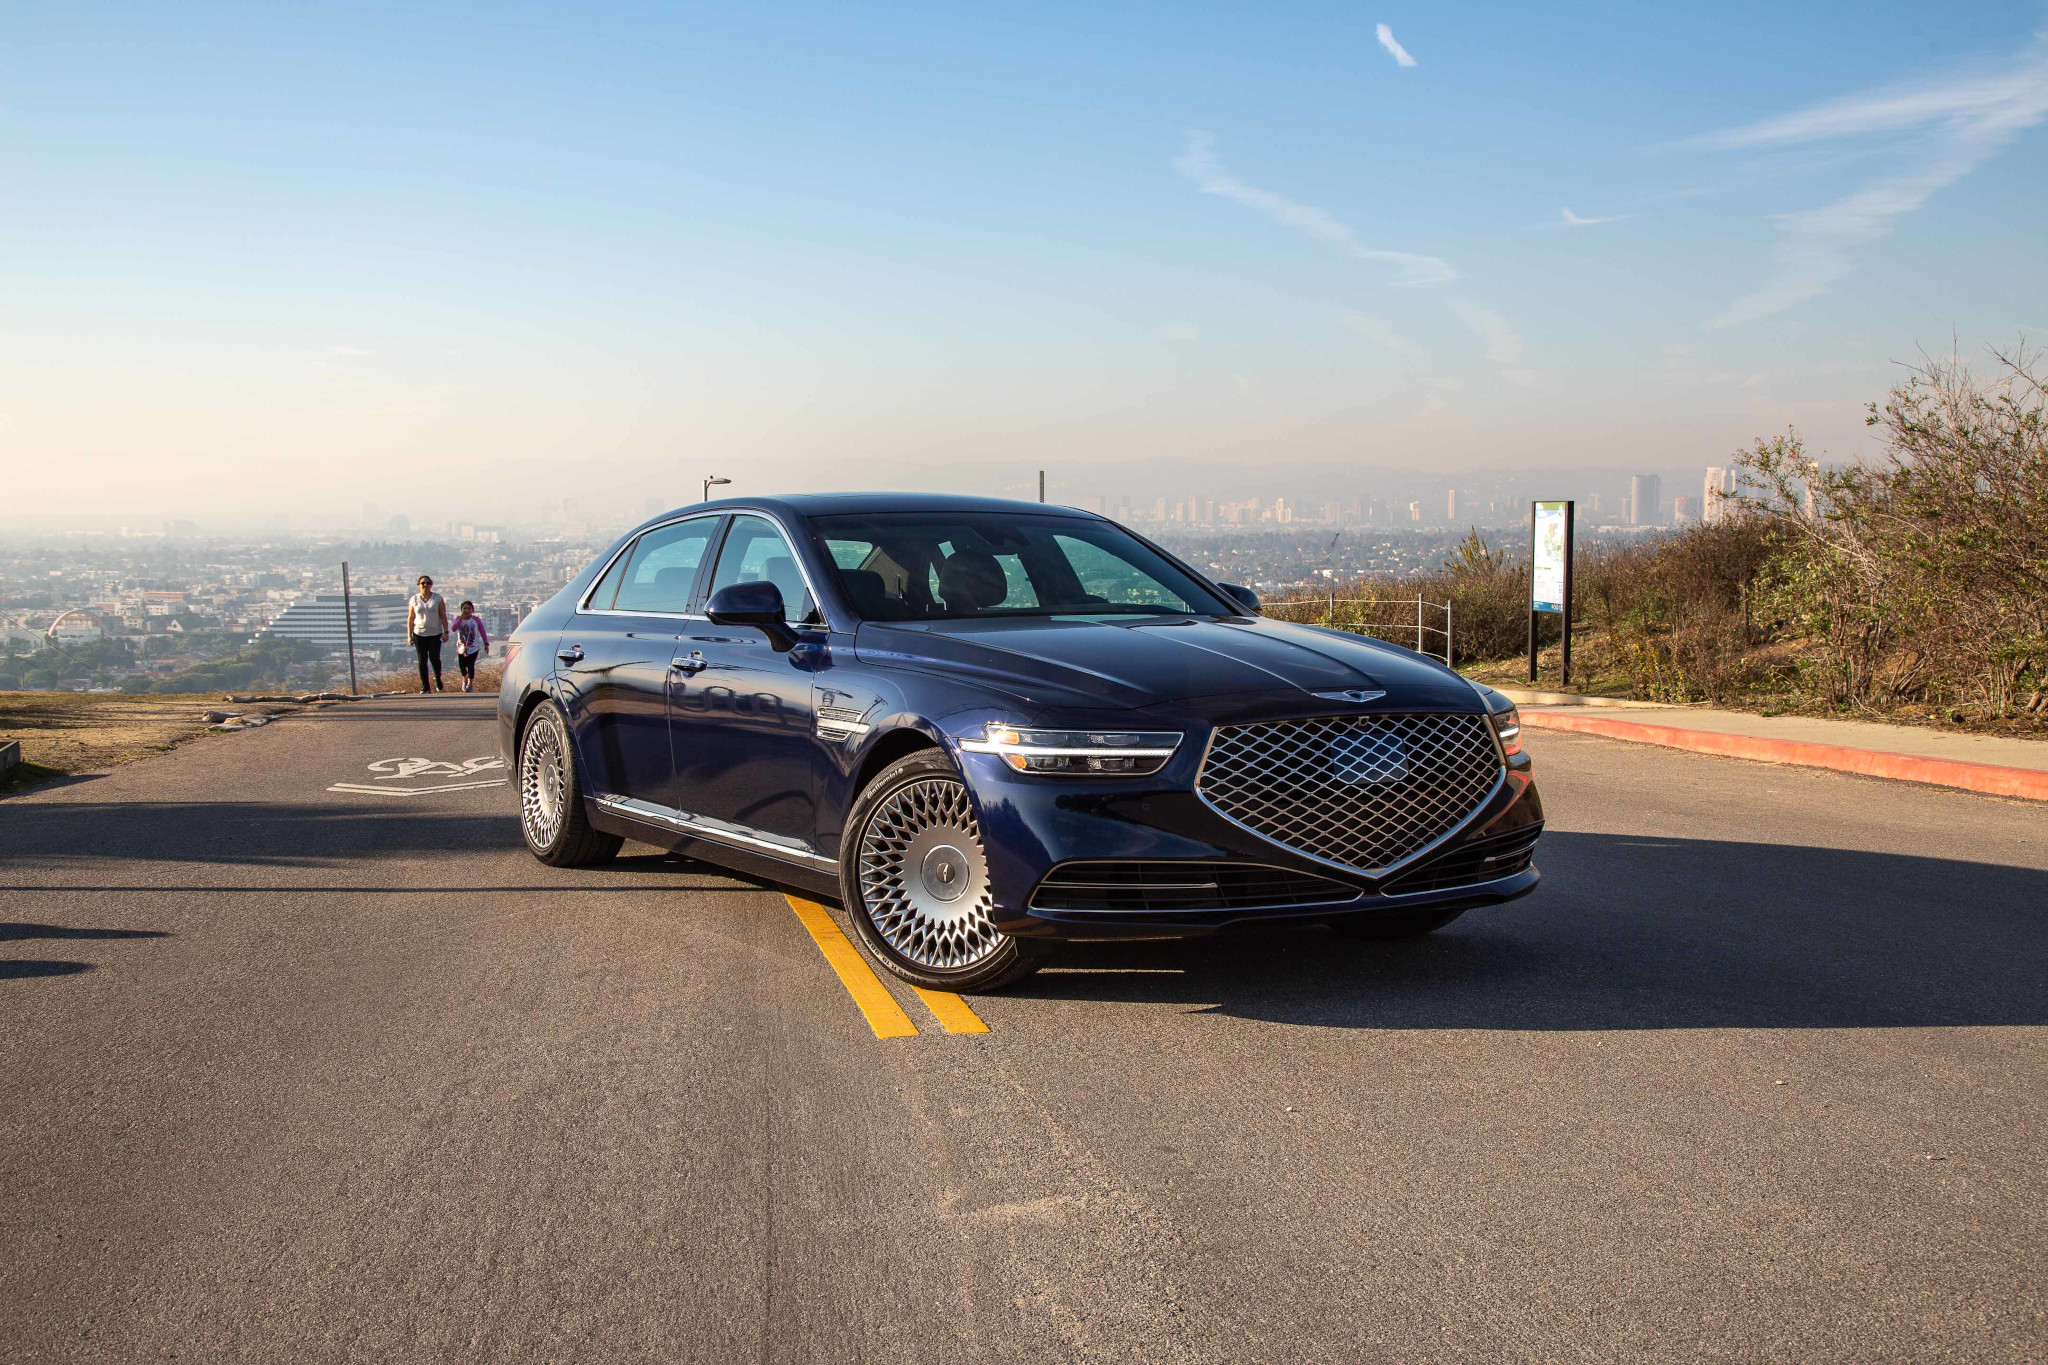 genesis-g90-5.0-2020-02-angle--blue--exterior--front.jpg